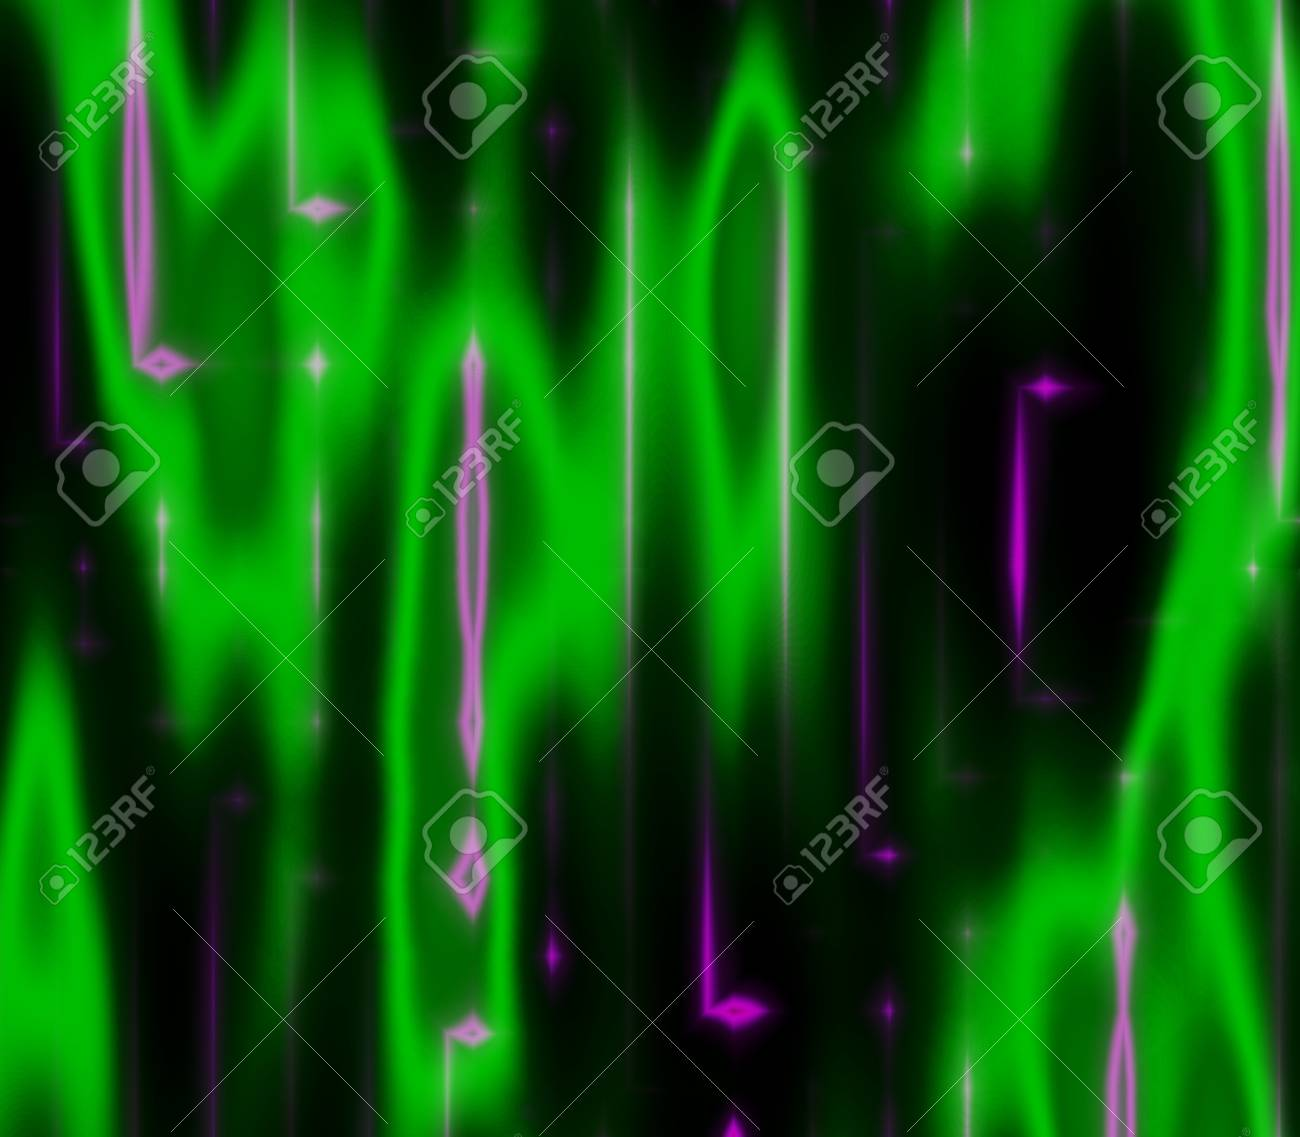 Abstract Colorful Seamless Background For Websites Design For